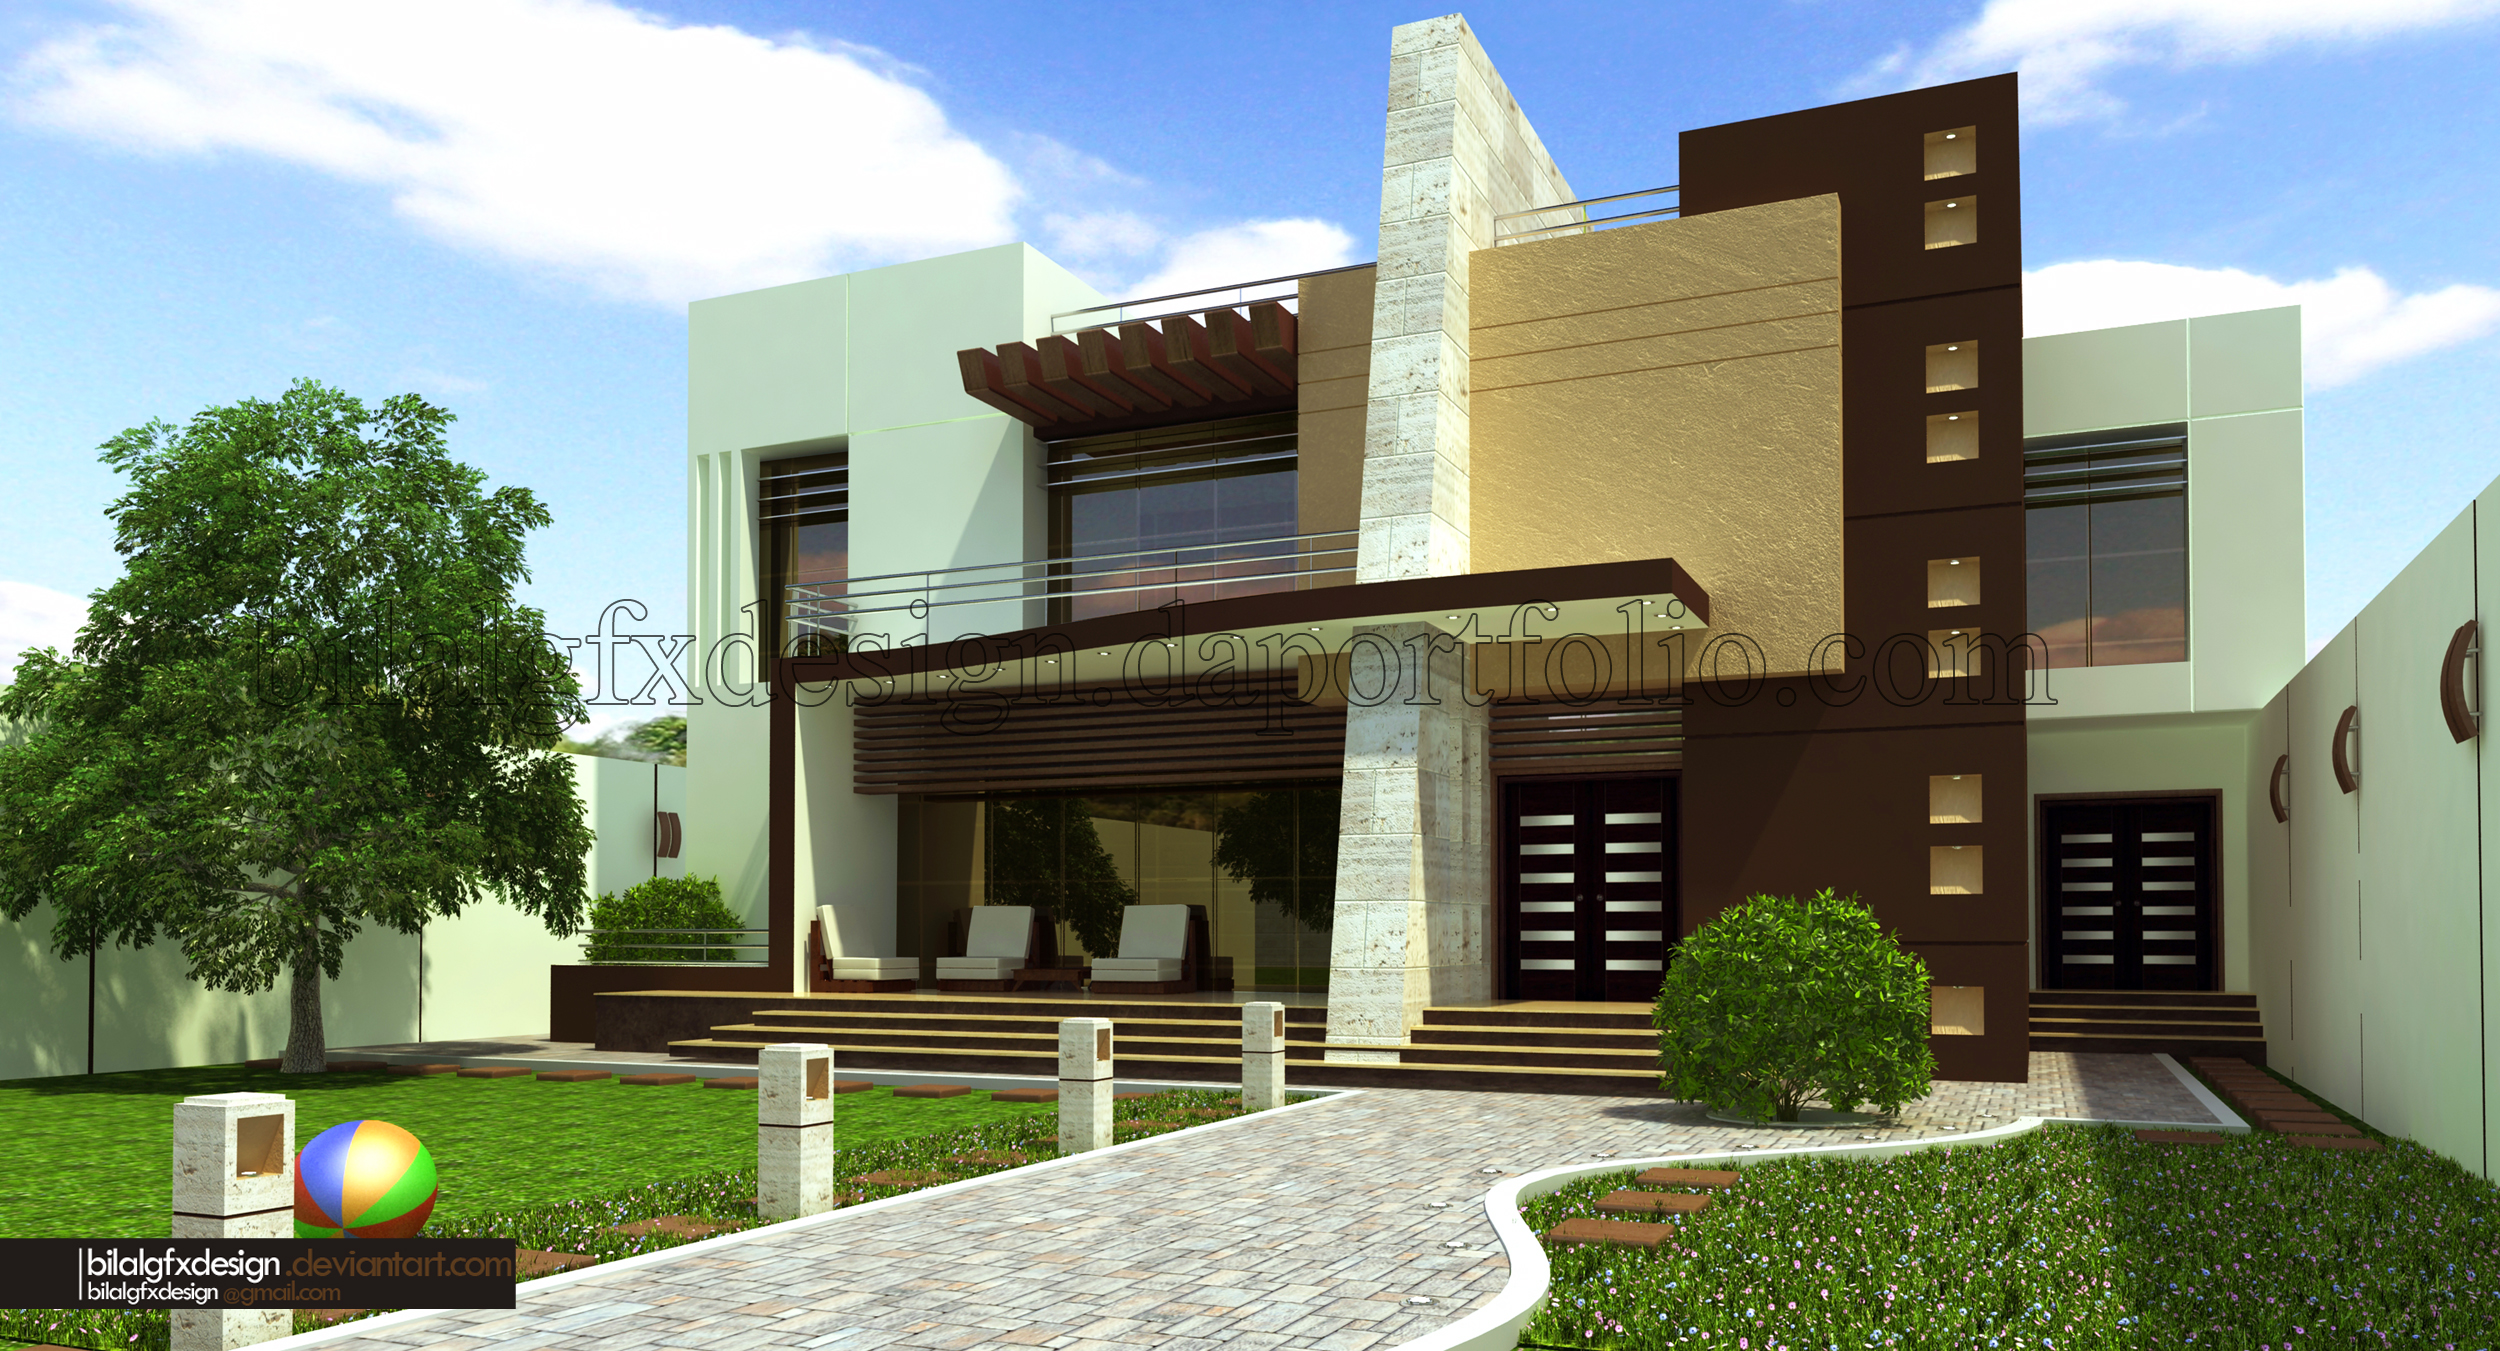 Modern villa 1 by bilalgfxdesign on deviantart for Modern villa architecture